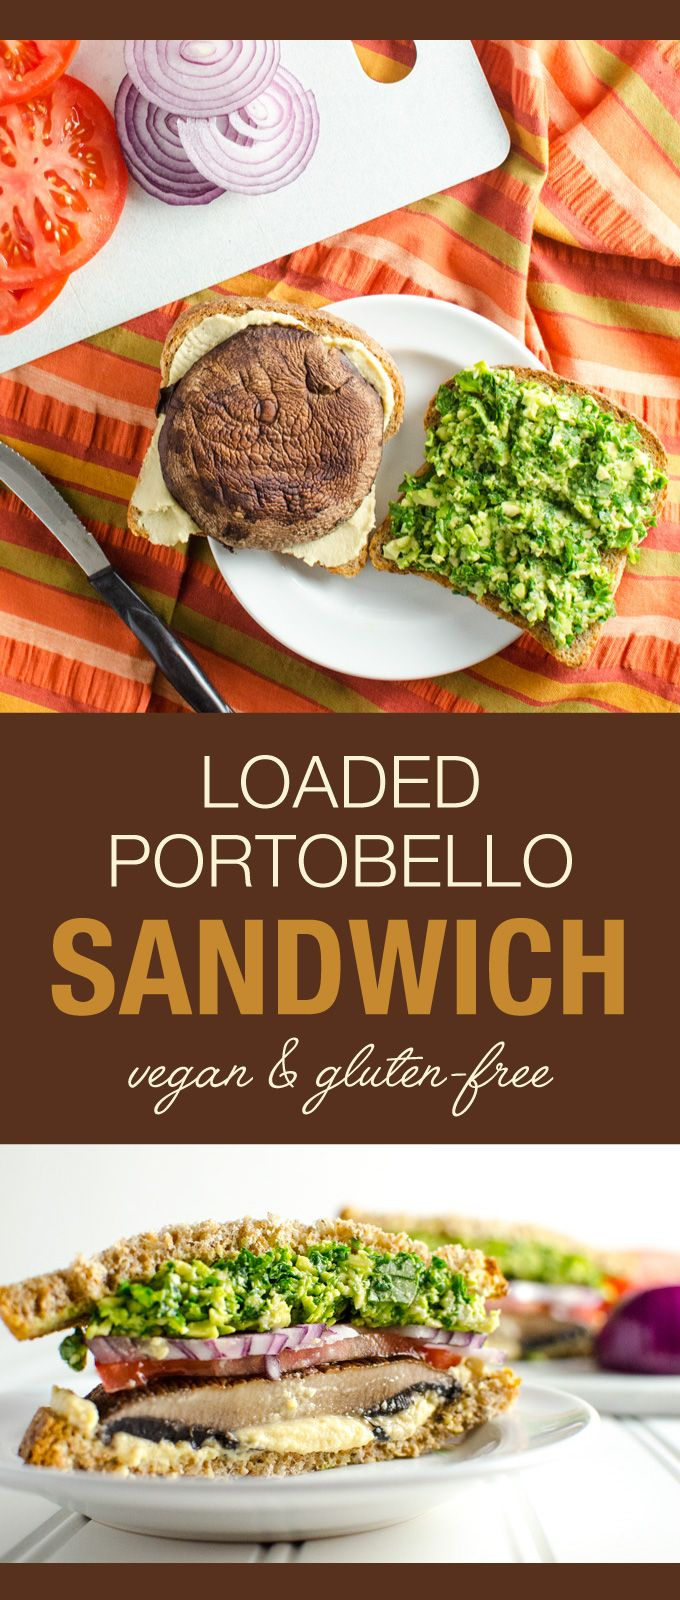 Loaded Portobello Mushroom Sandwich - this vegan and gluten-free recipe is packed with flavor and healthy ingredients - takes less than 30 minutes to prepare!